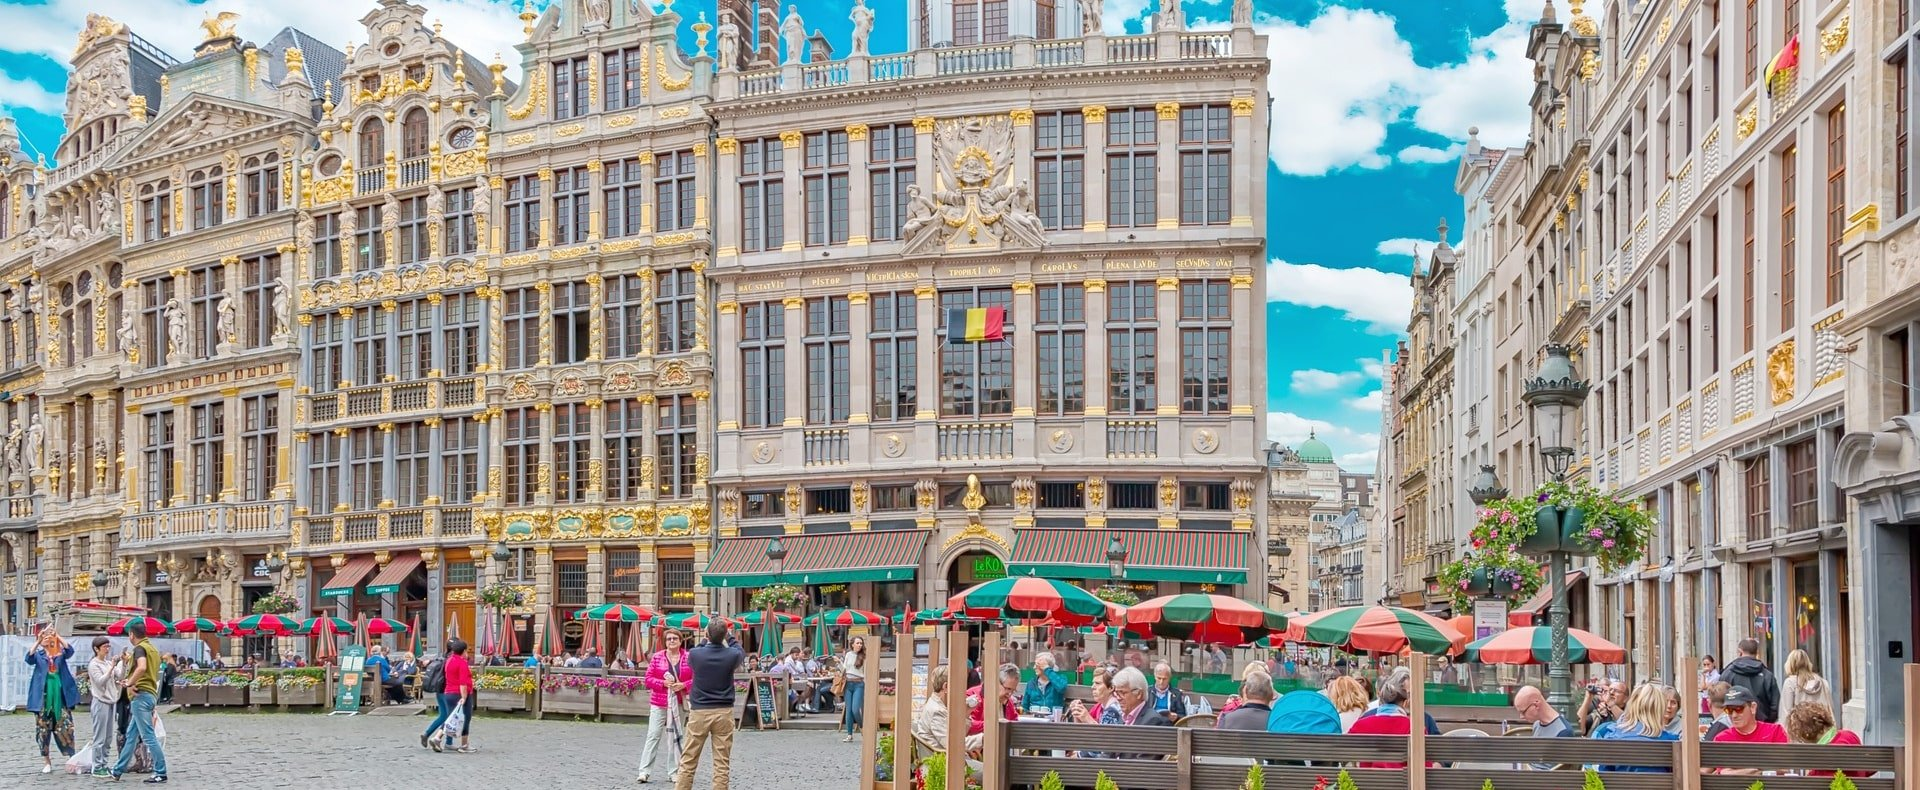 Market Place, Brussels